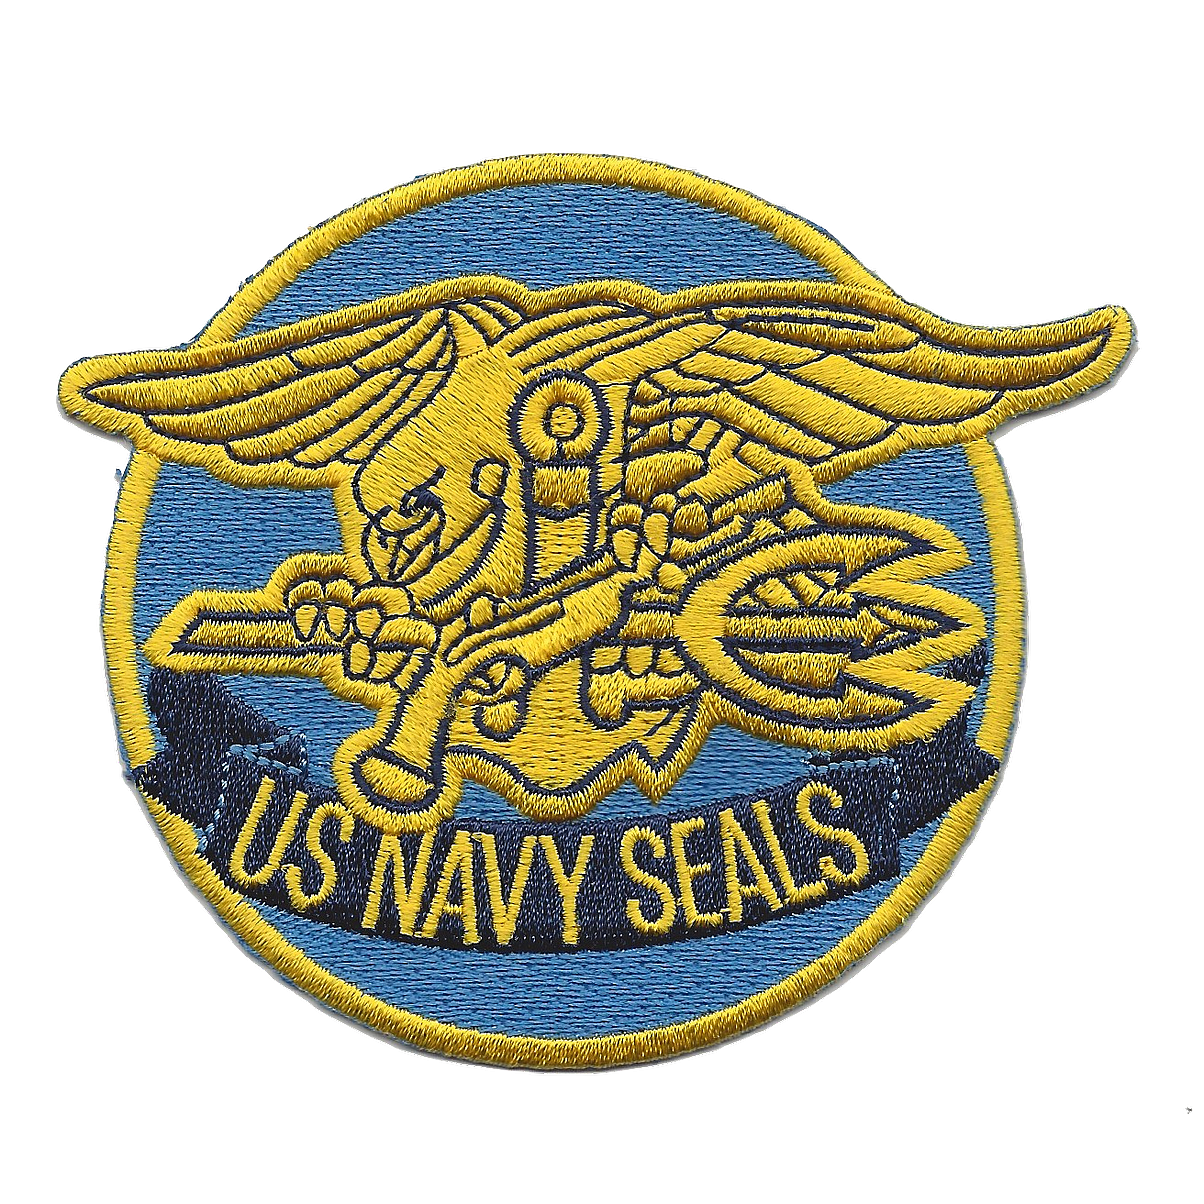 Us Navy Seals With Badge Patch The Roots Of The Navy Seal Go Back To